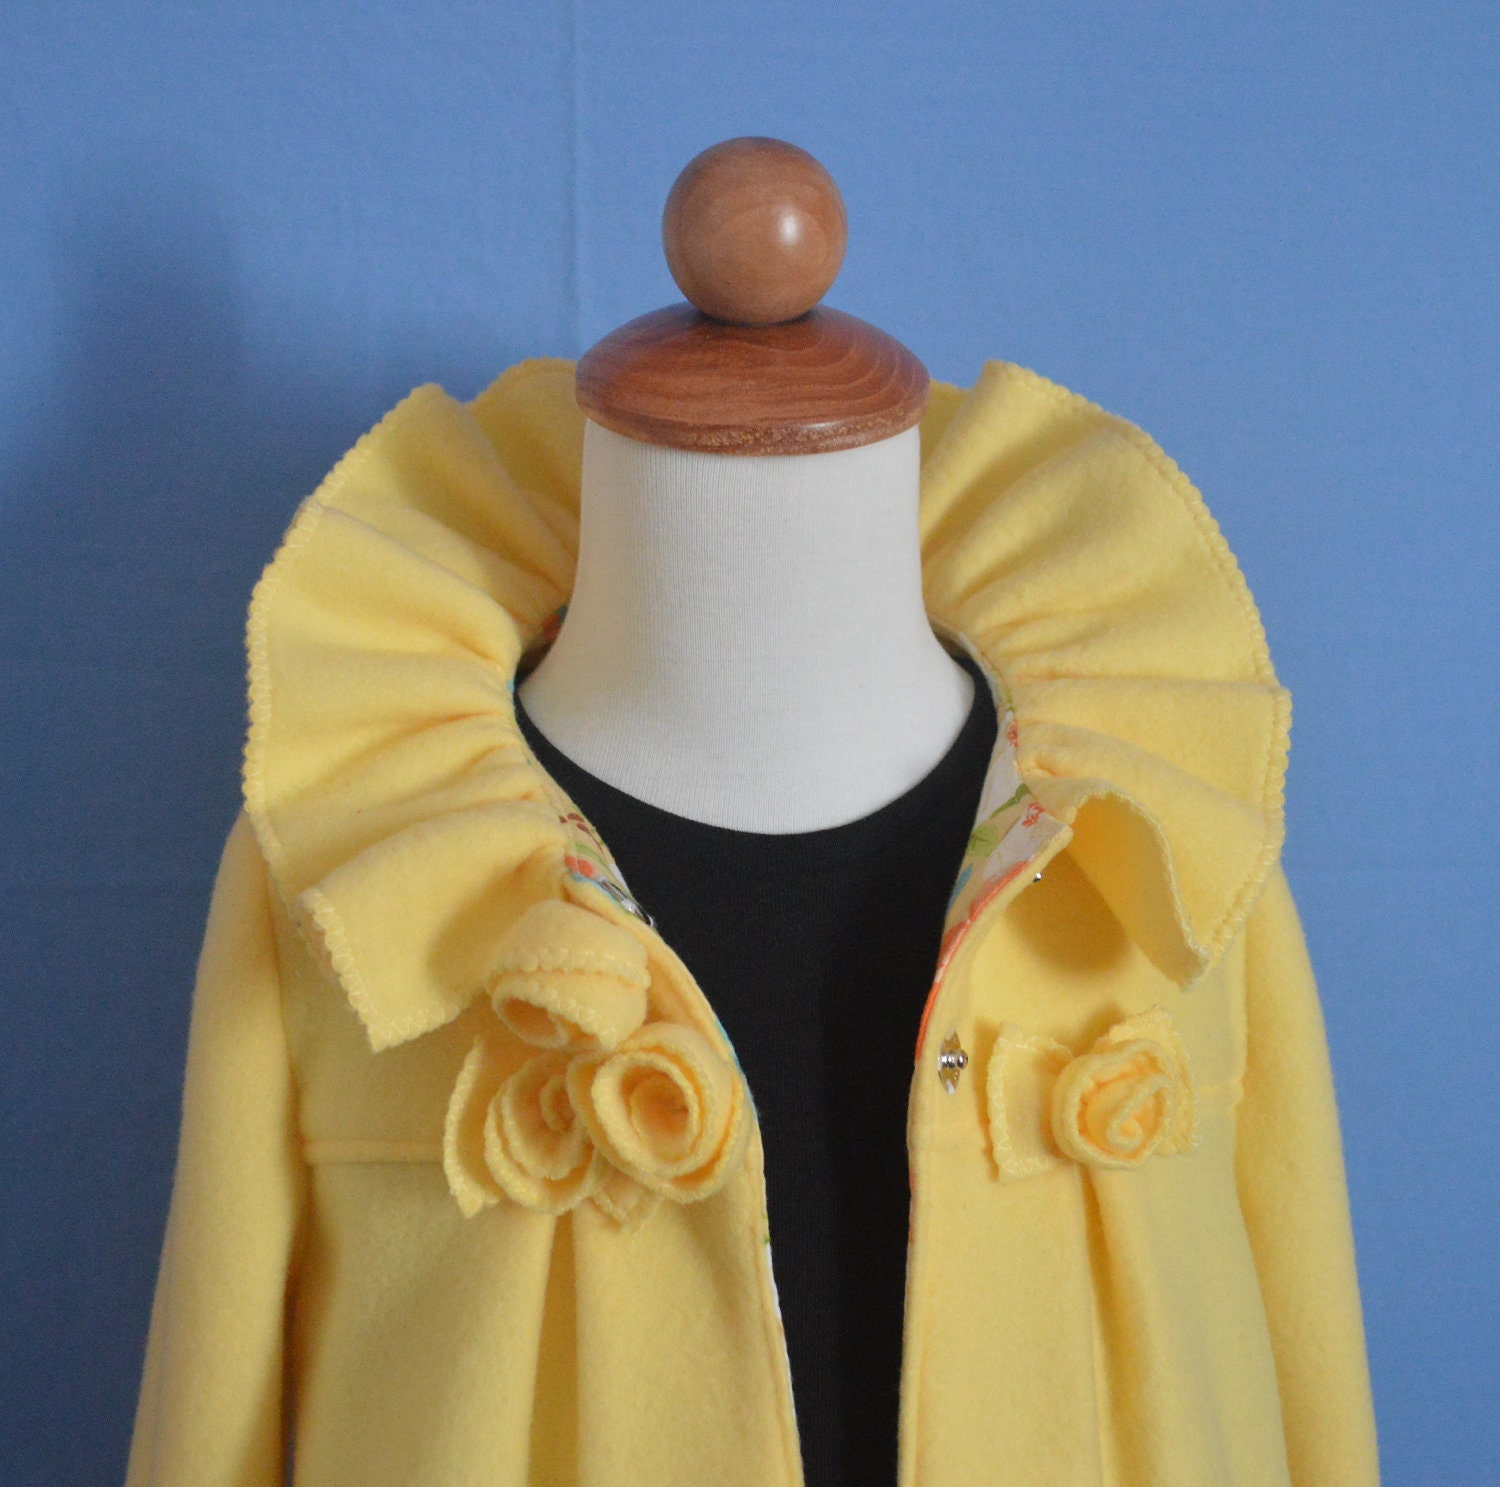 Ruffles &amp Roses Girls Fleece Coat Pattern by SundayGirlDesigns